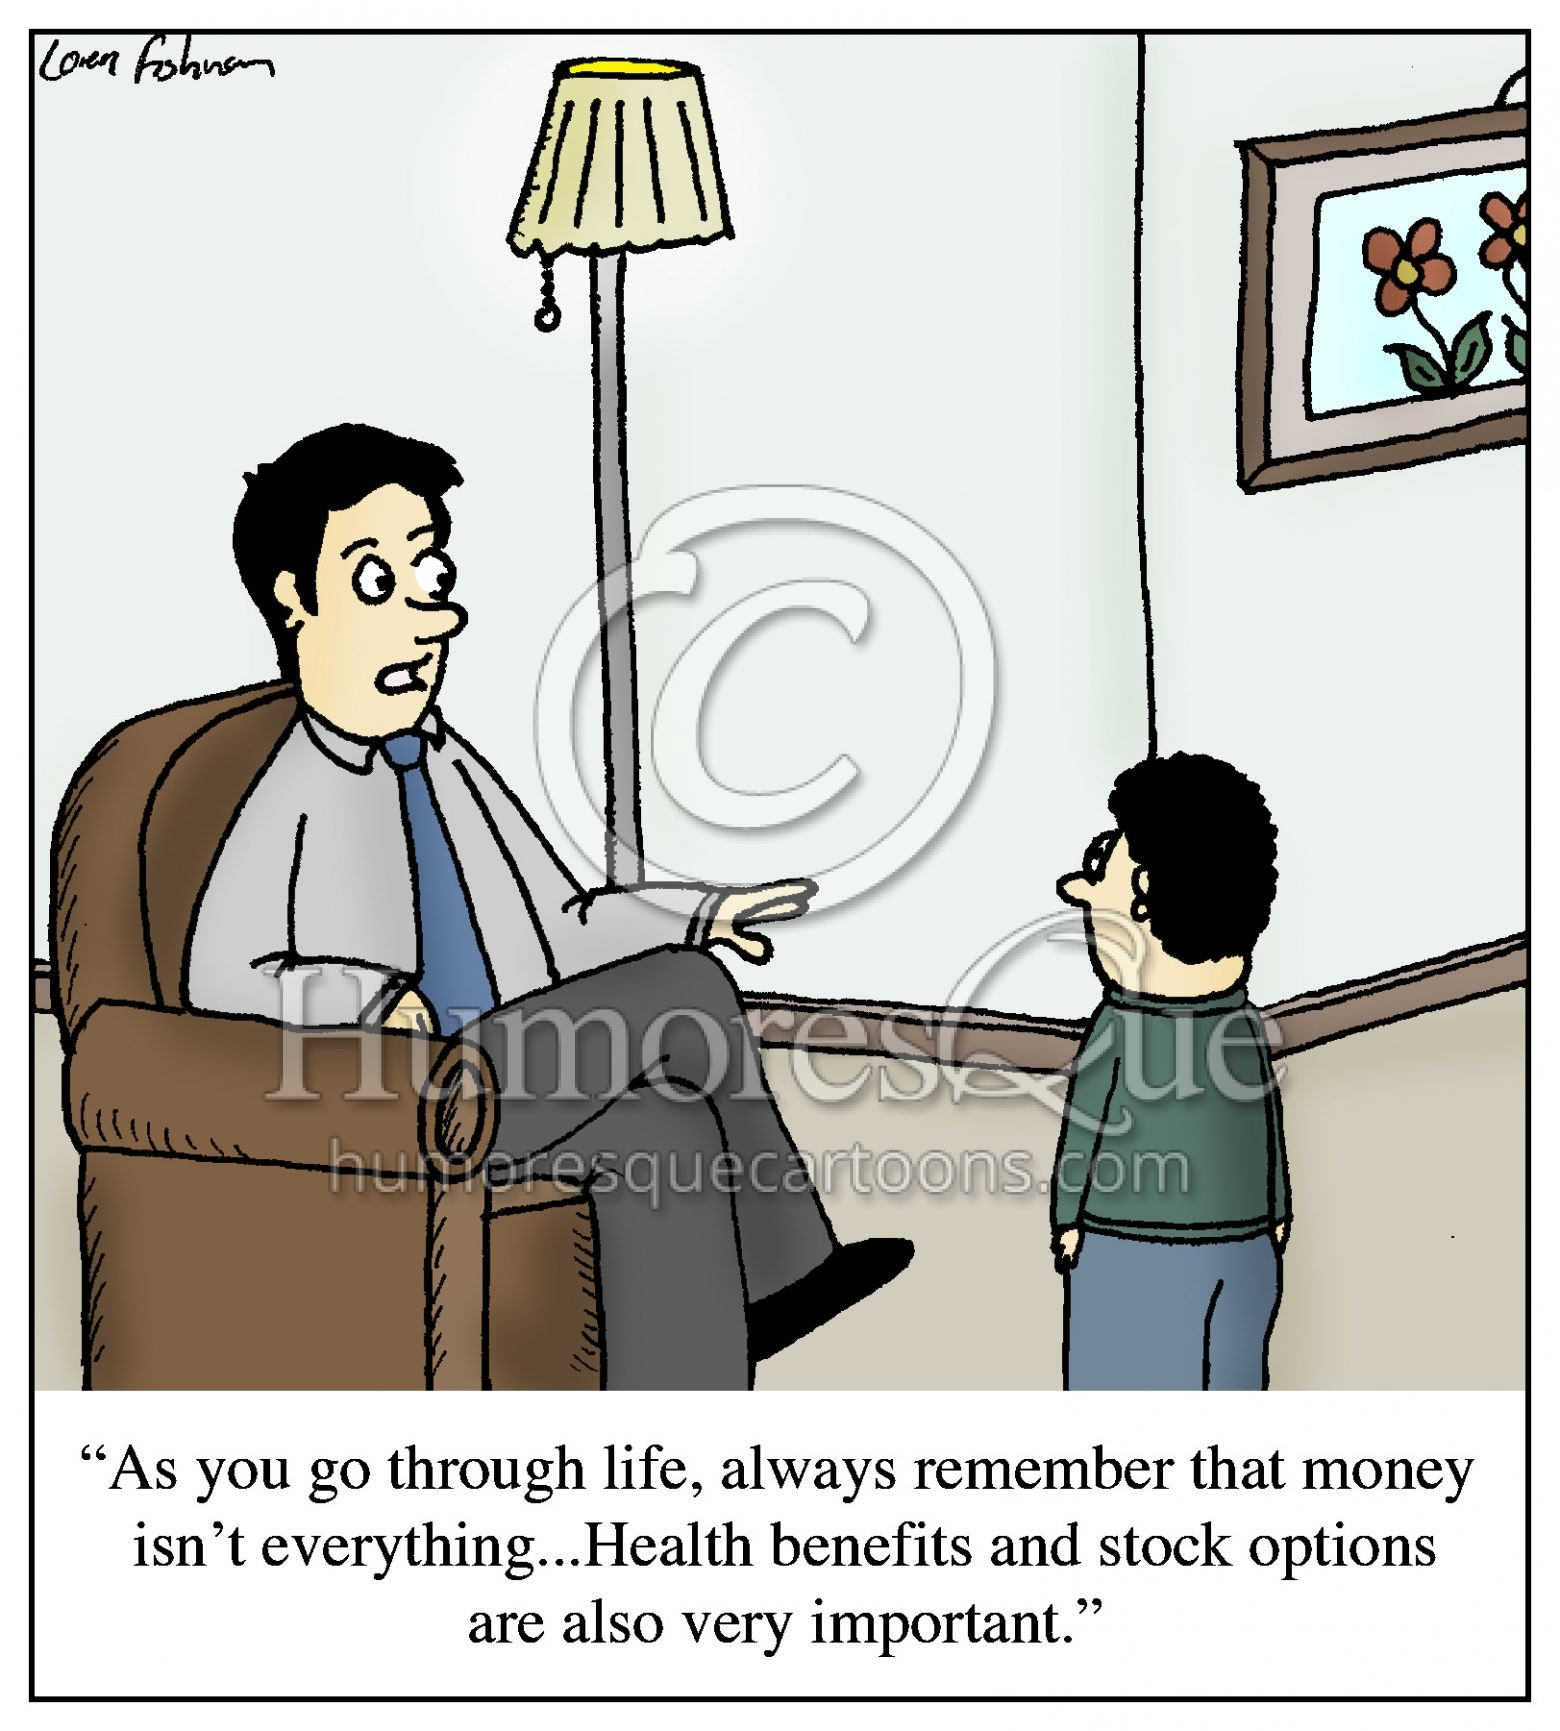 health benefits and stock options father advice cartoon